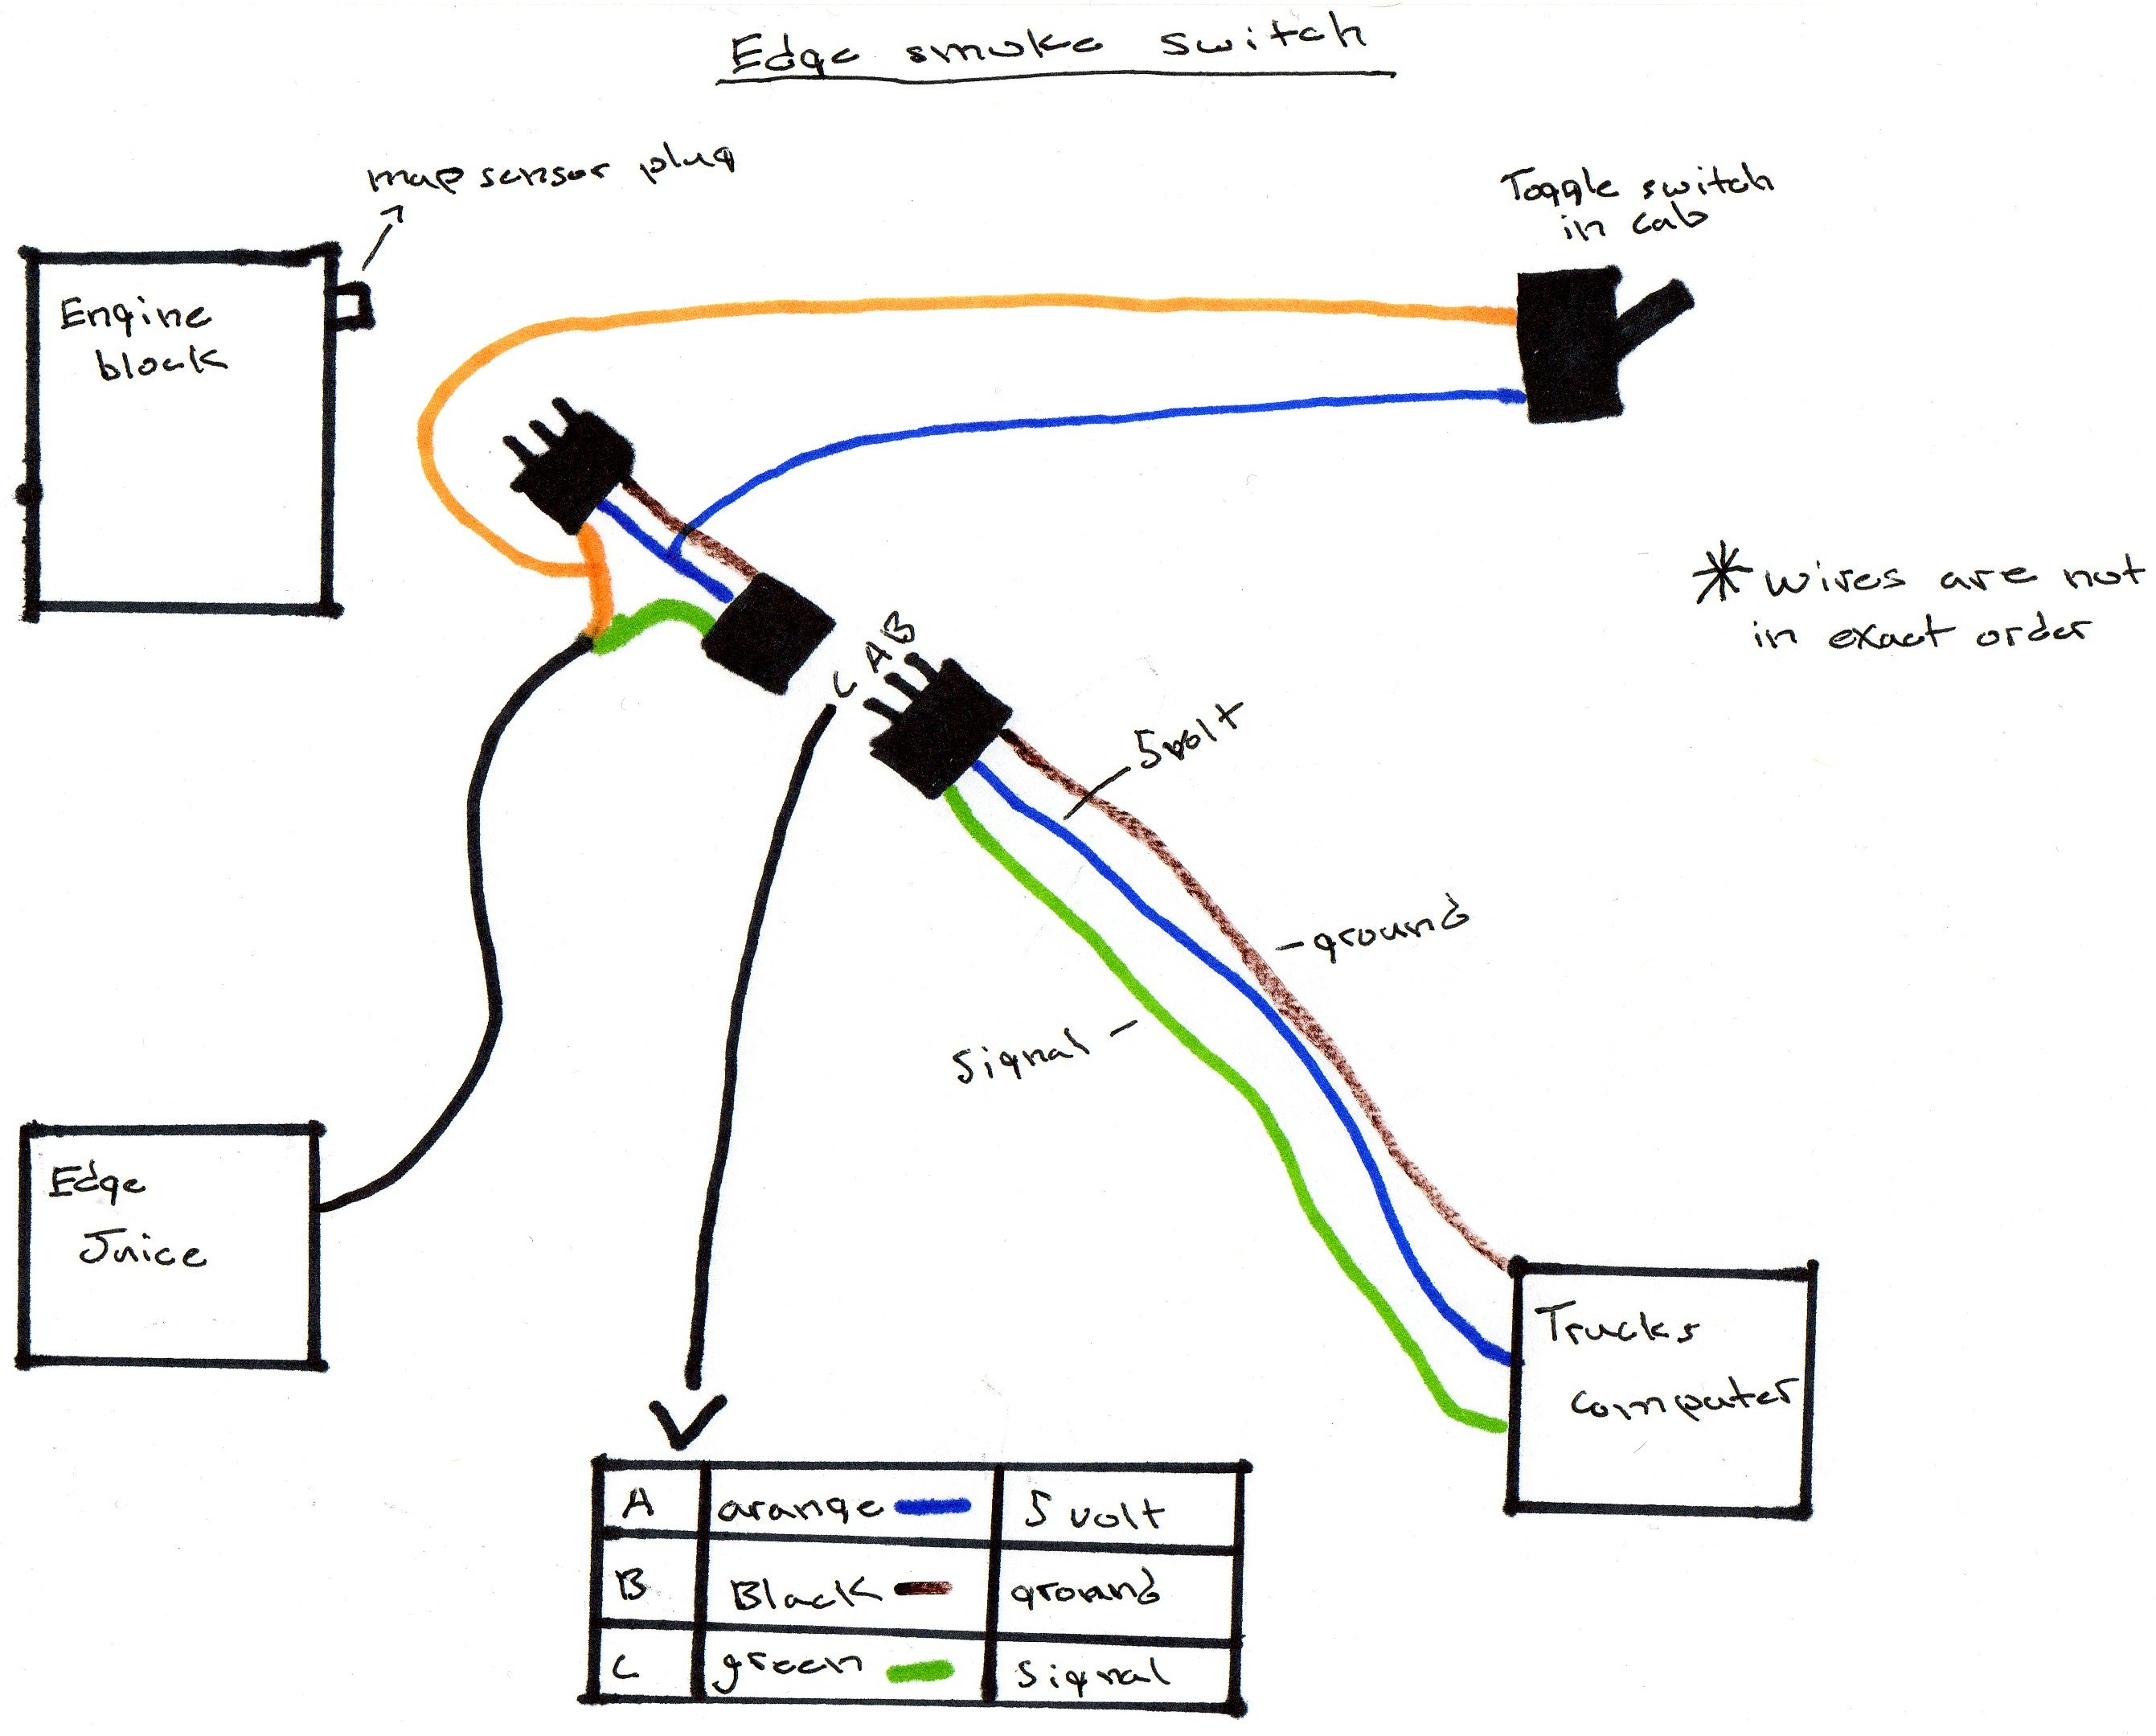 Mins N14 Ecm Wiring Diagram | Best Wiring Liry Mins N Engine Wiring Diagram on n14 fuel system diagram, n14 ecm pinout diagram, n14 oil diagram, cummins isx engine diagram, n14 cummins harness diagram,